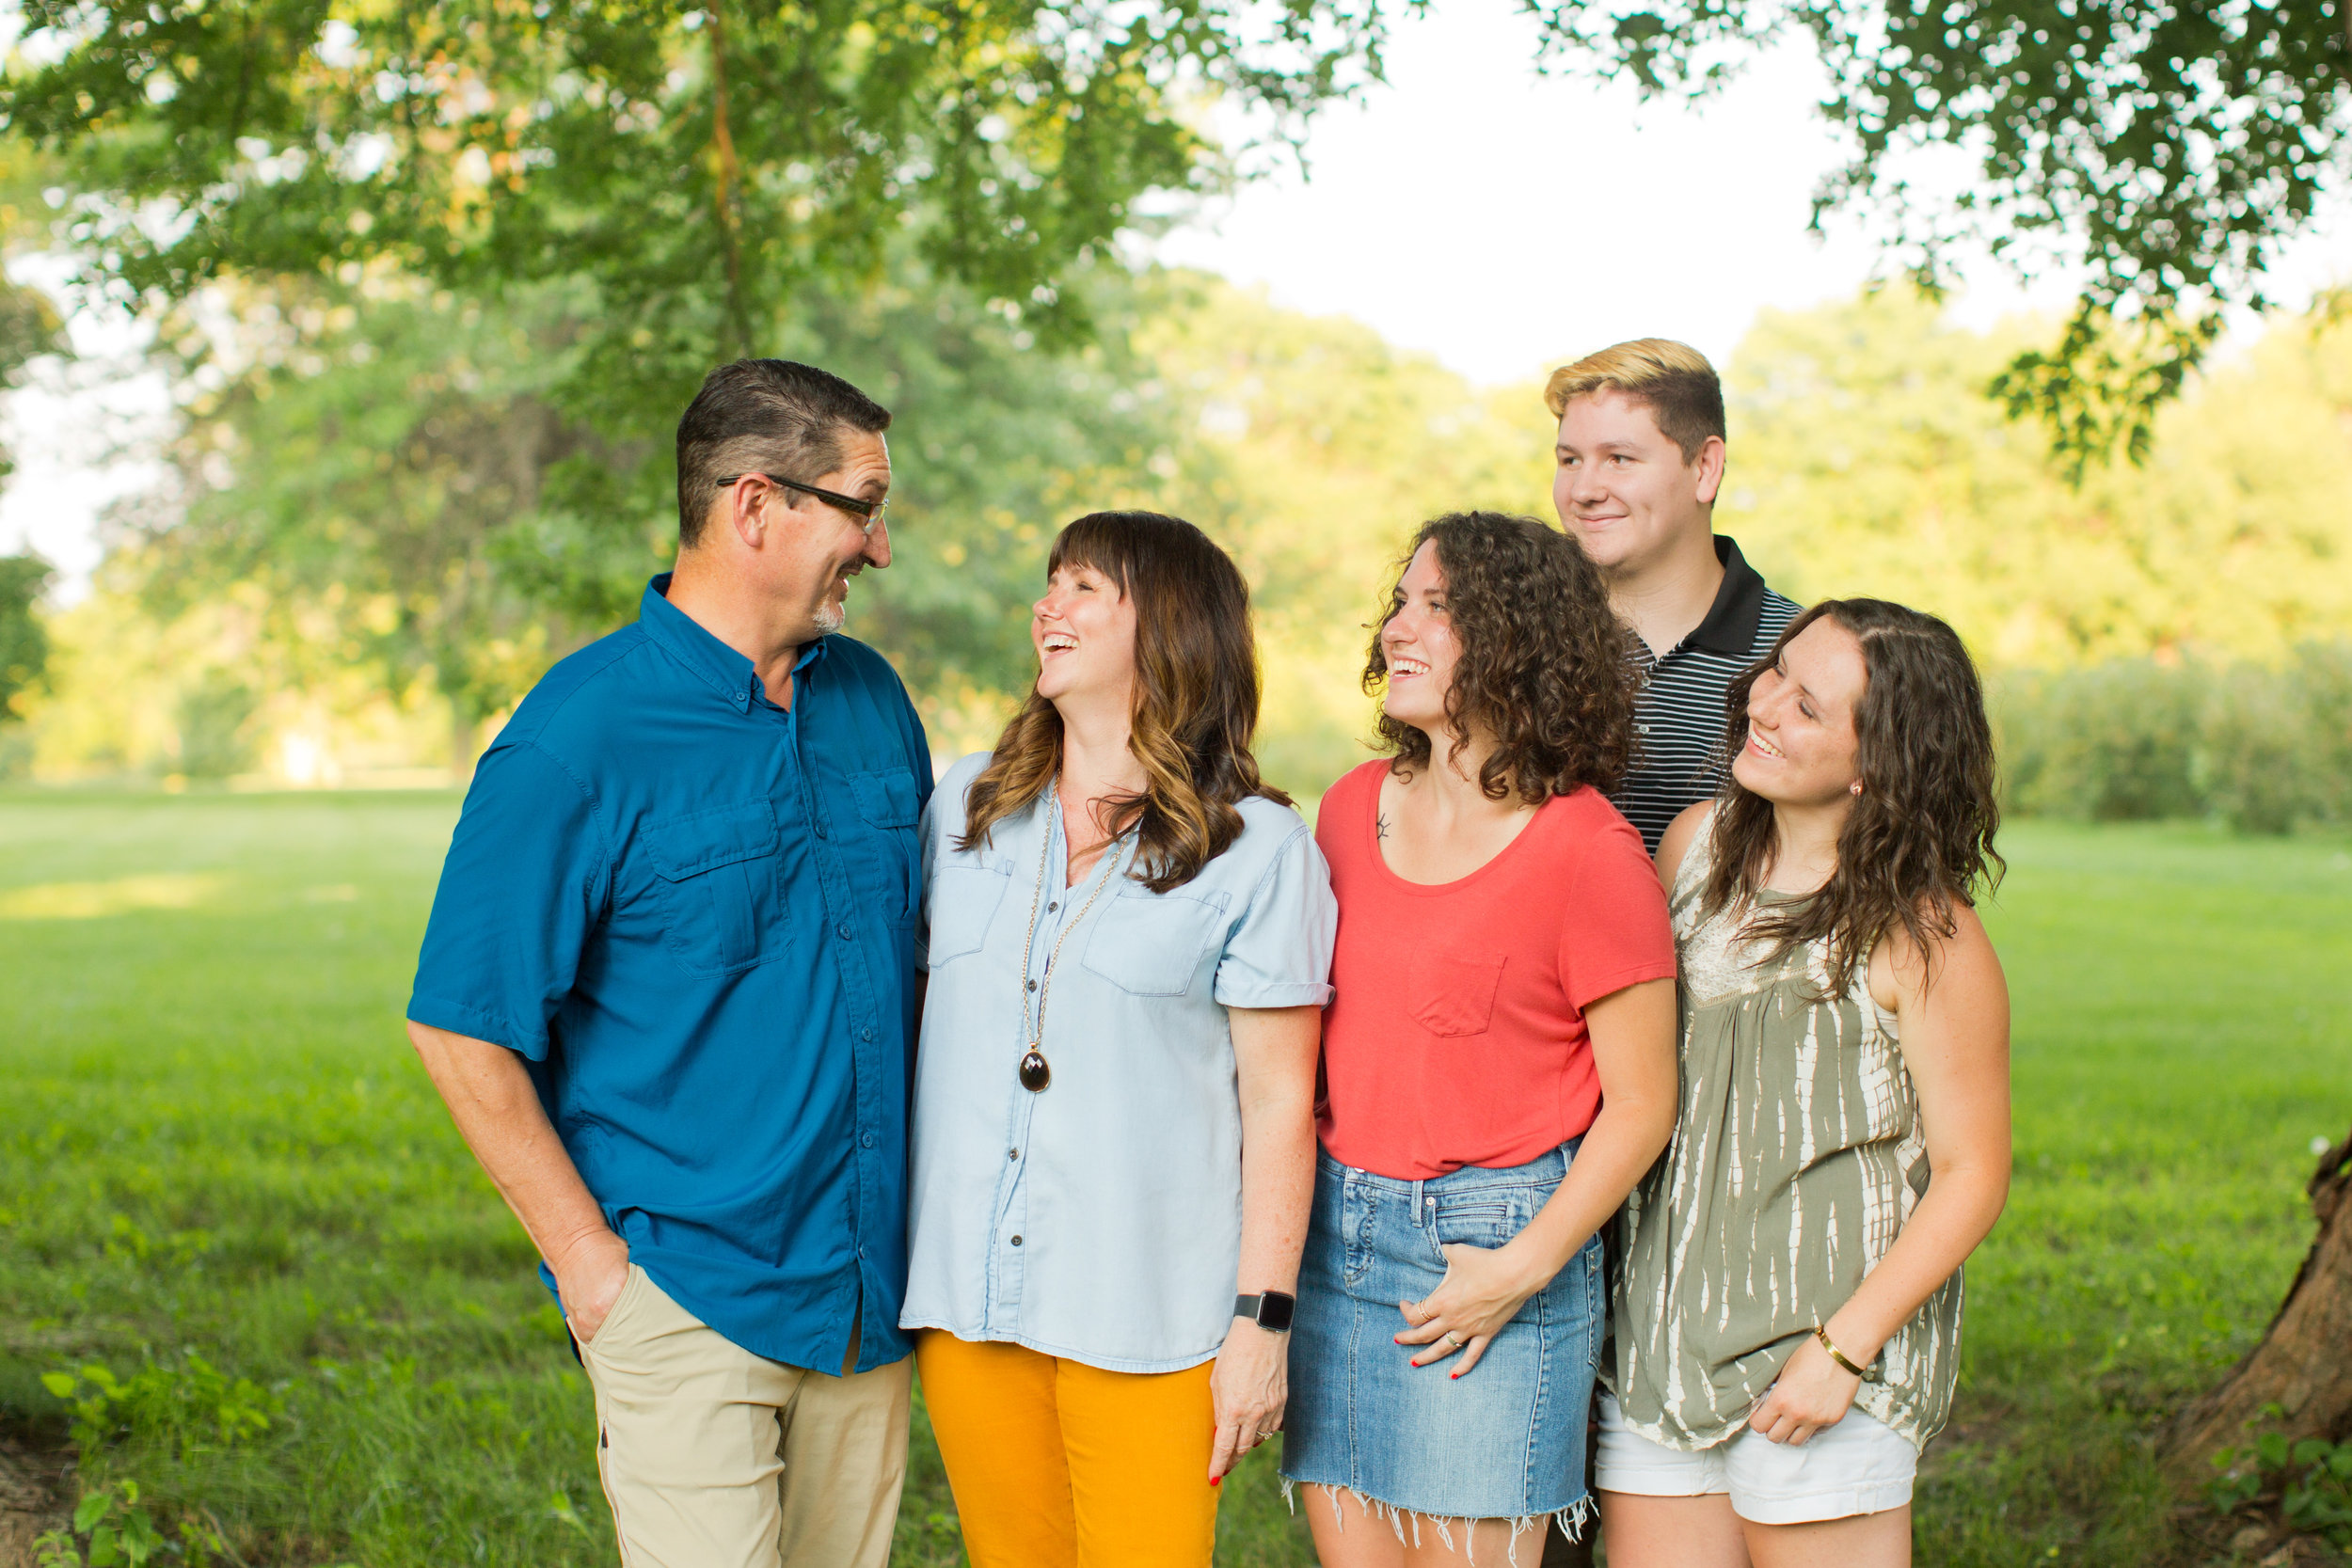 des moines family in fashionable clothes pictures